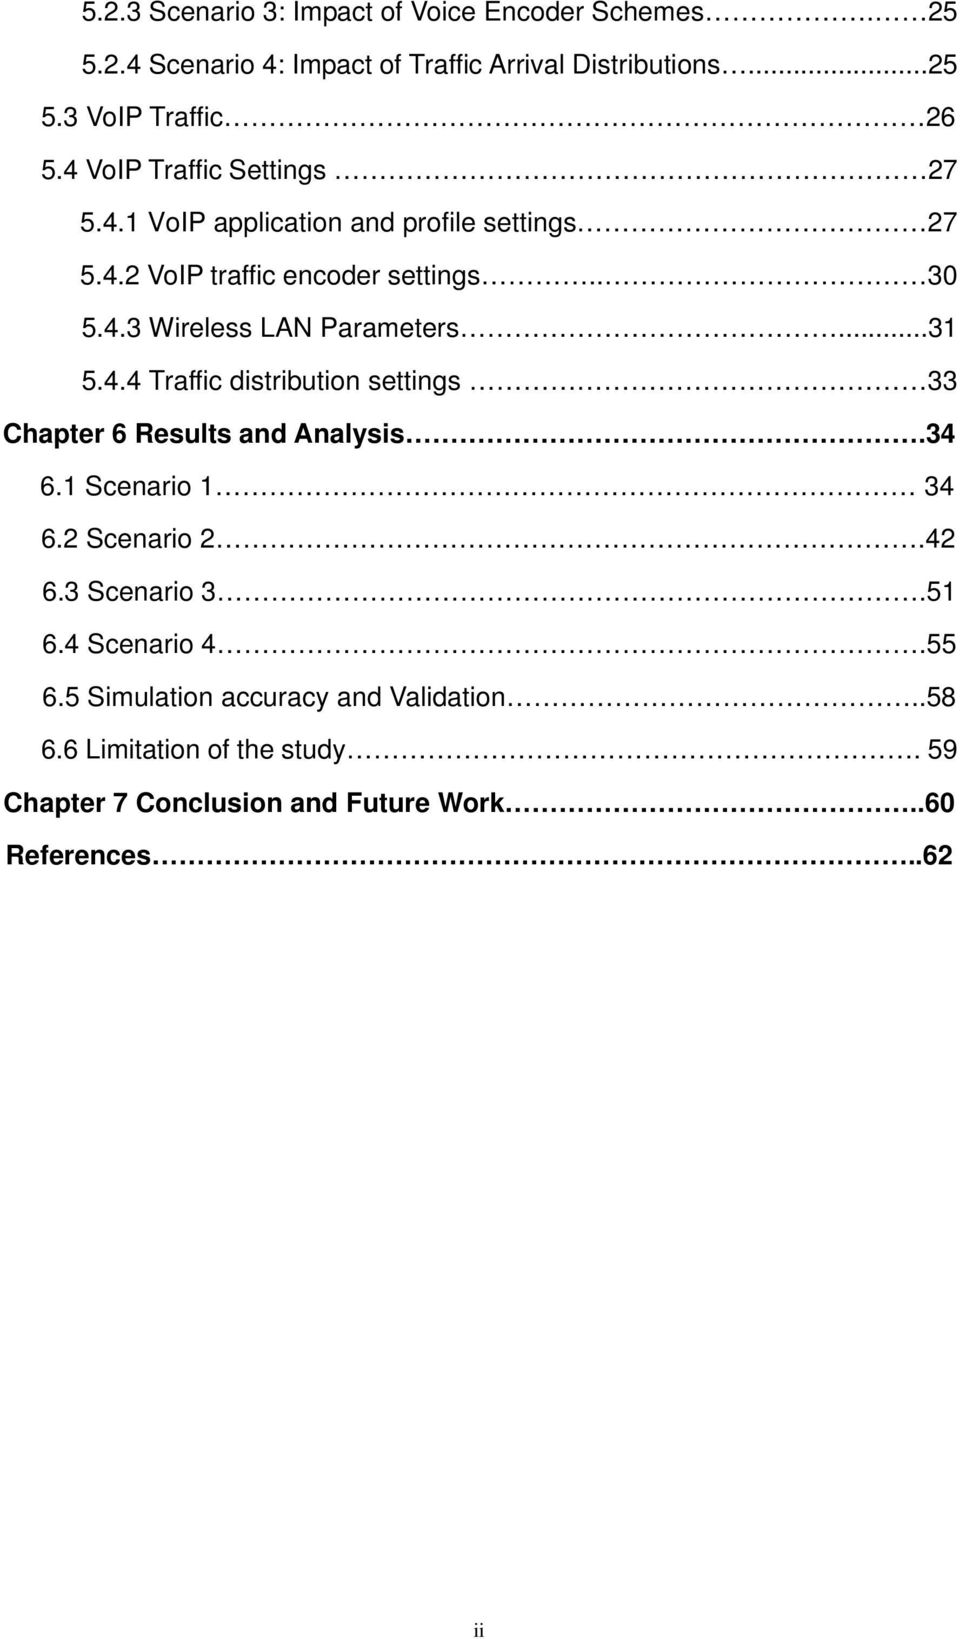 ..31 5.4.4 Traffic distribution settings 33 Chapter 6 Results and Analysis.34 6.1 Scenario 1 34 6.2 Scenario 2.42 6.3 Scenario 3.51 6.